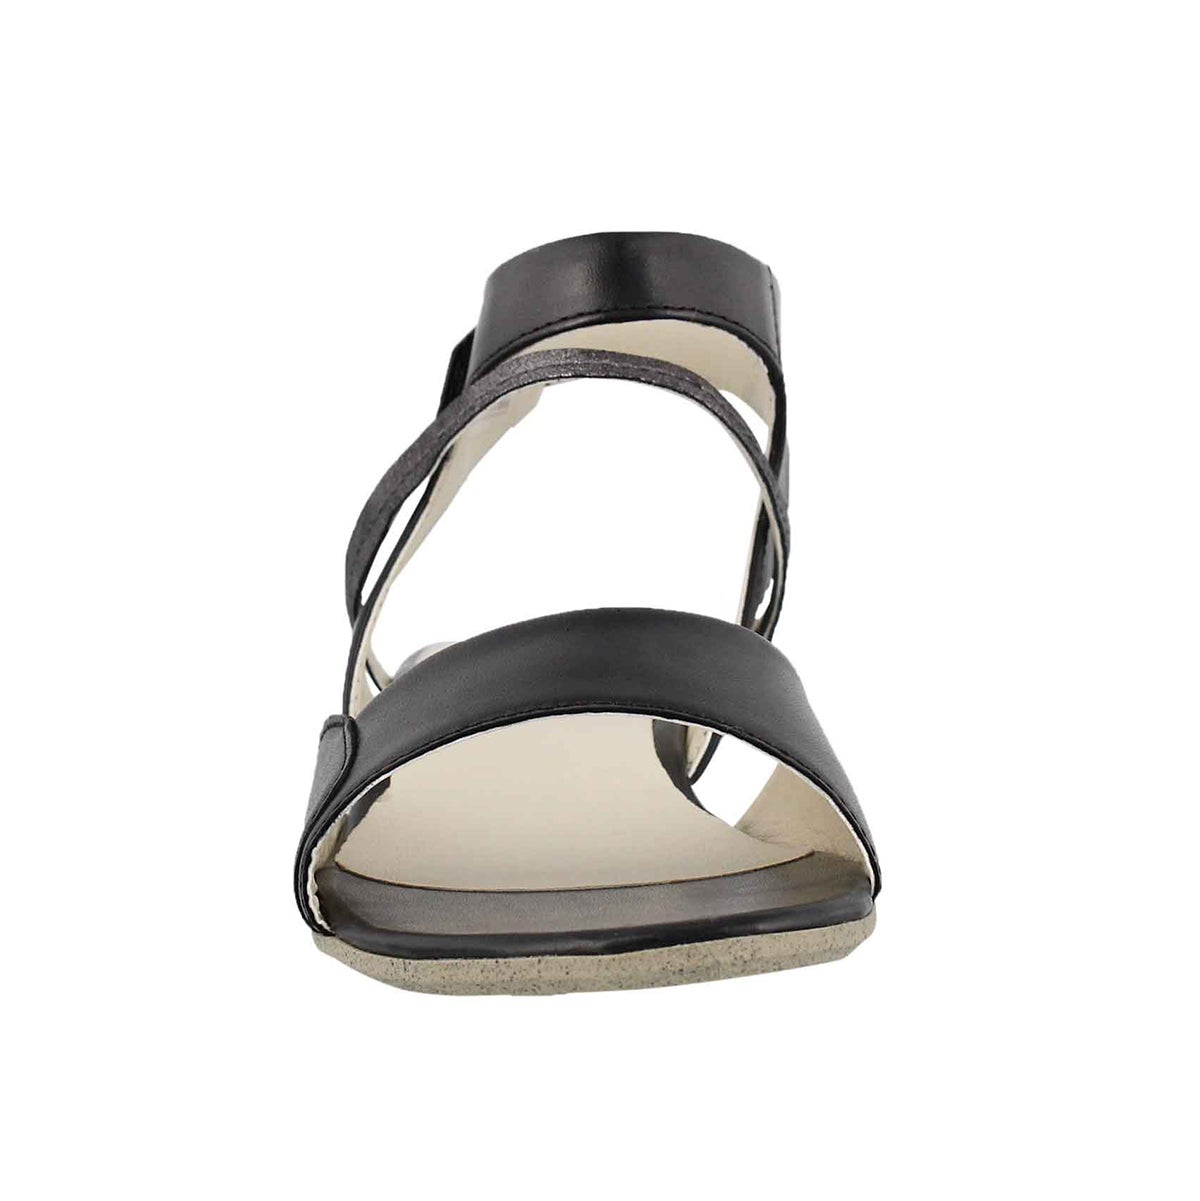 Lds Fabia 05 black dress sandal